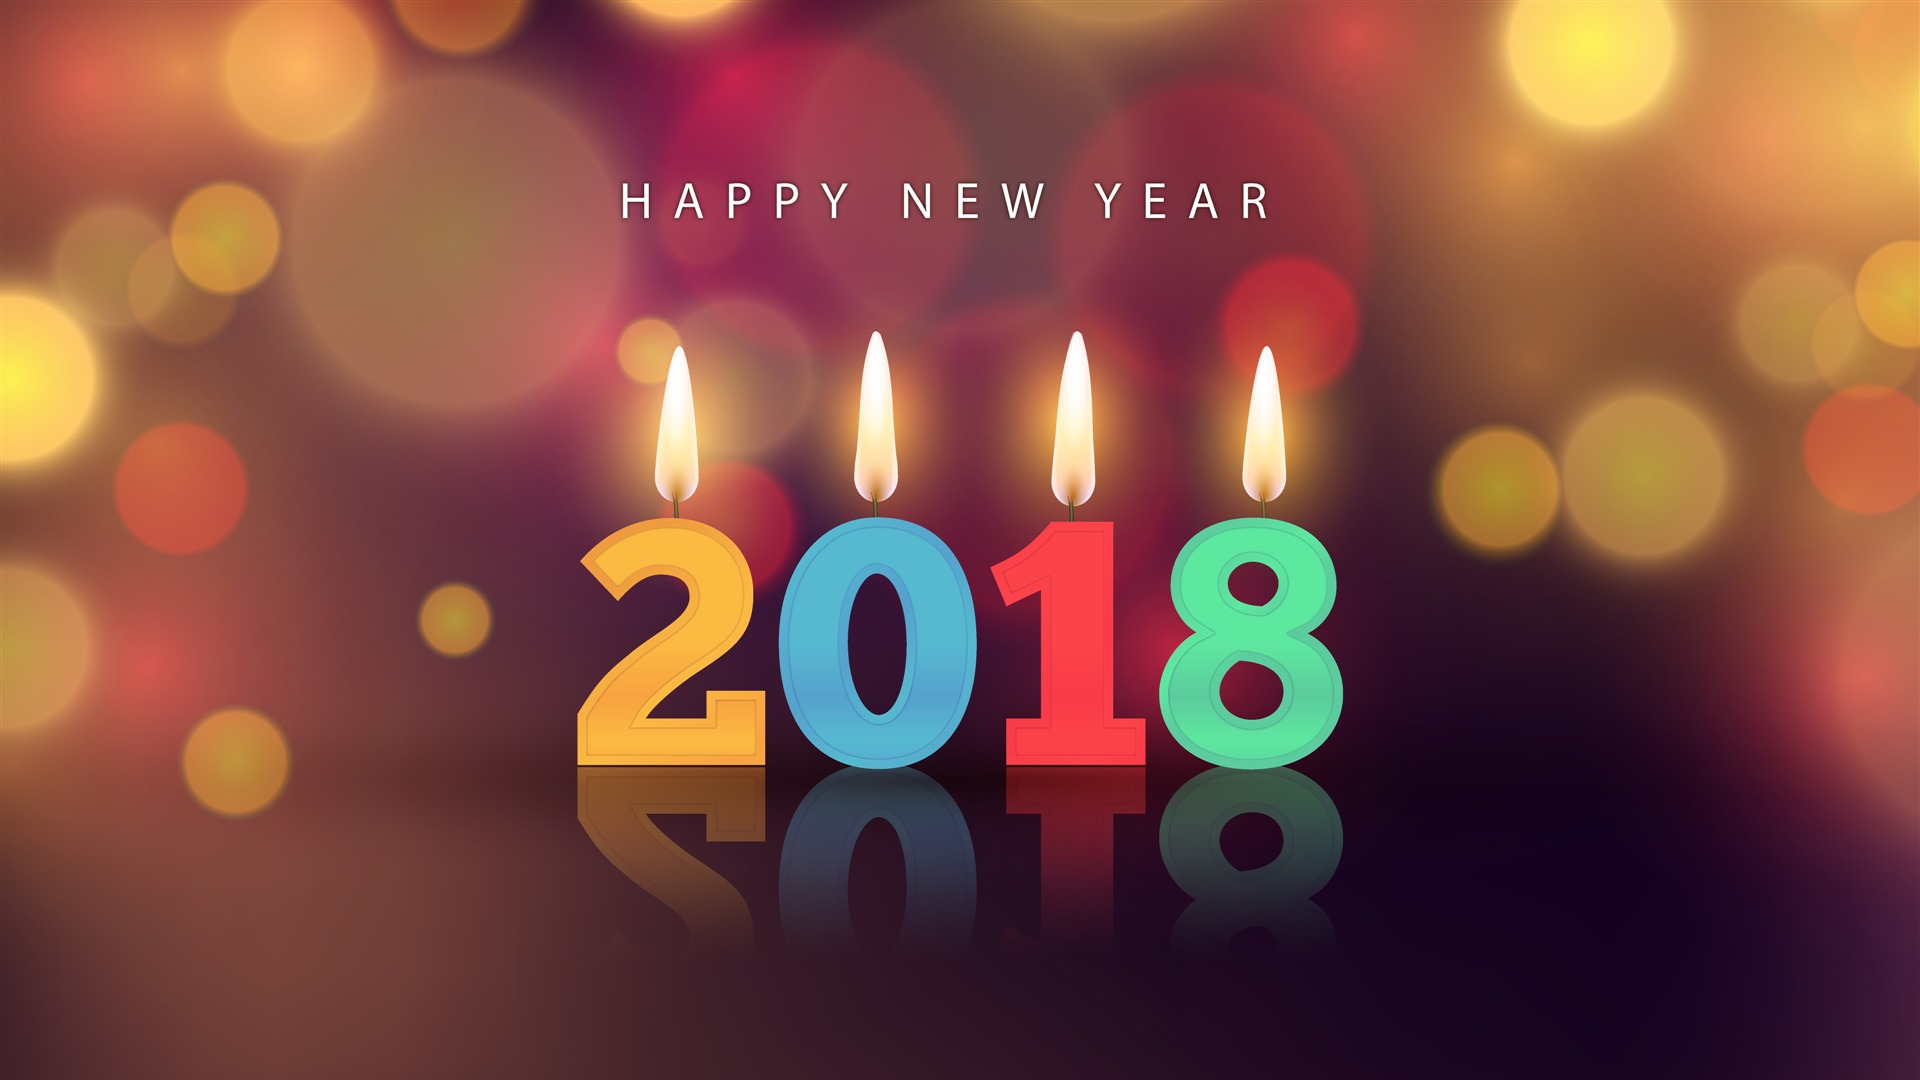 Happy New Year 2018 Blessing Wallpaper Hd Background - Blessed New Year 2018 - HD Wallpaper